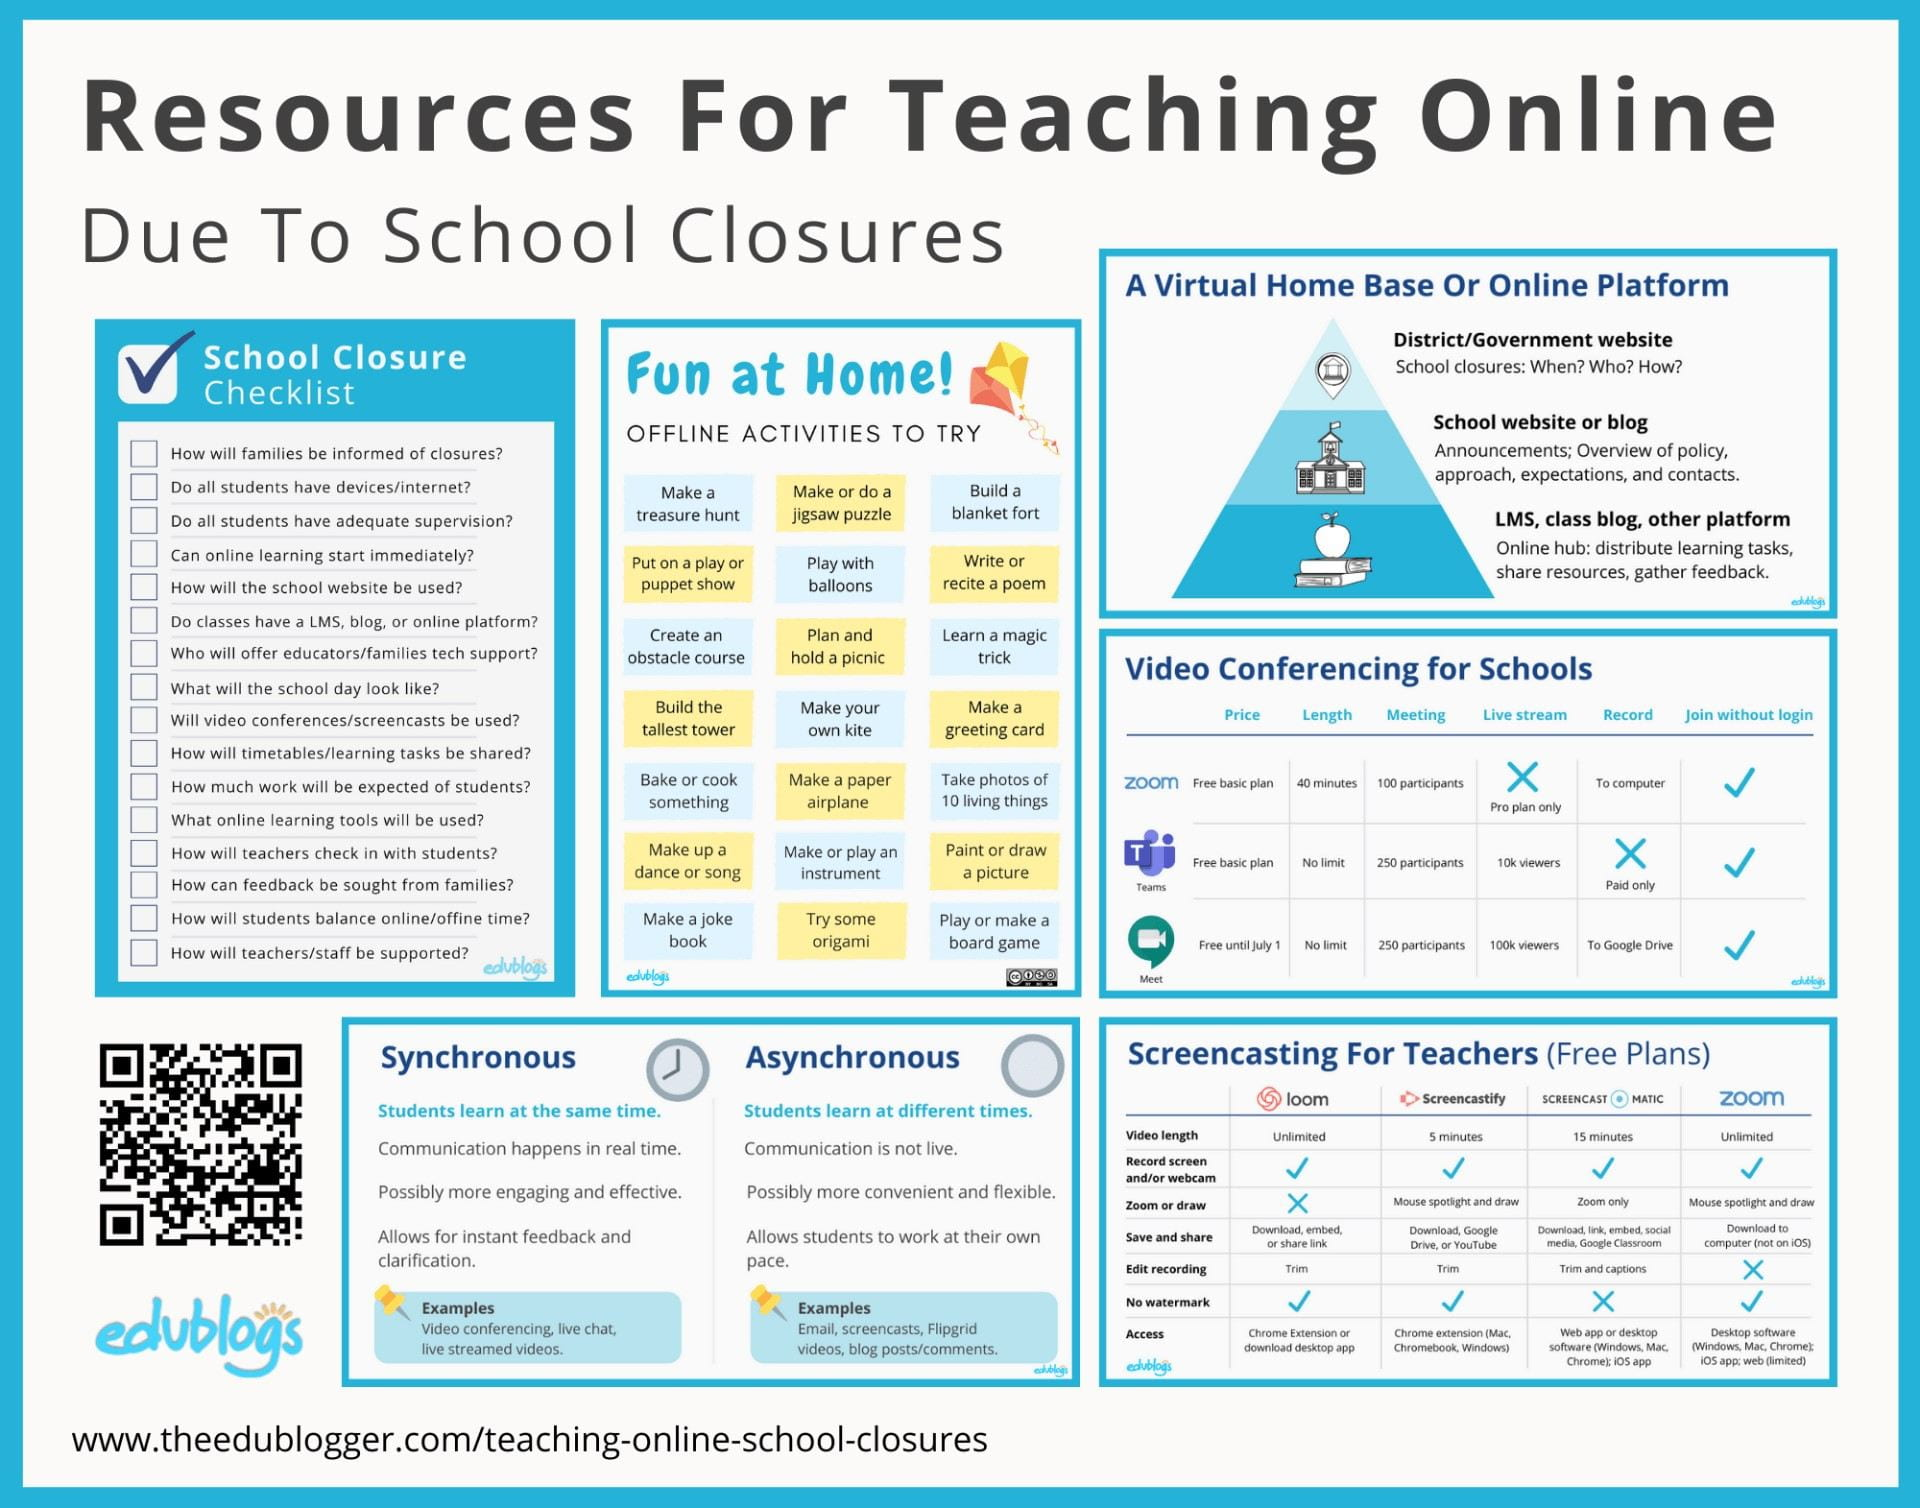 hight resolution of Resources For Teaching Online Due To School Closures – The Edublogger